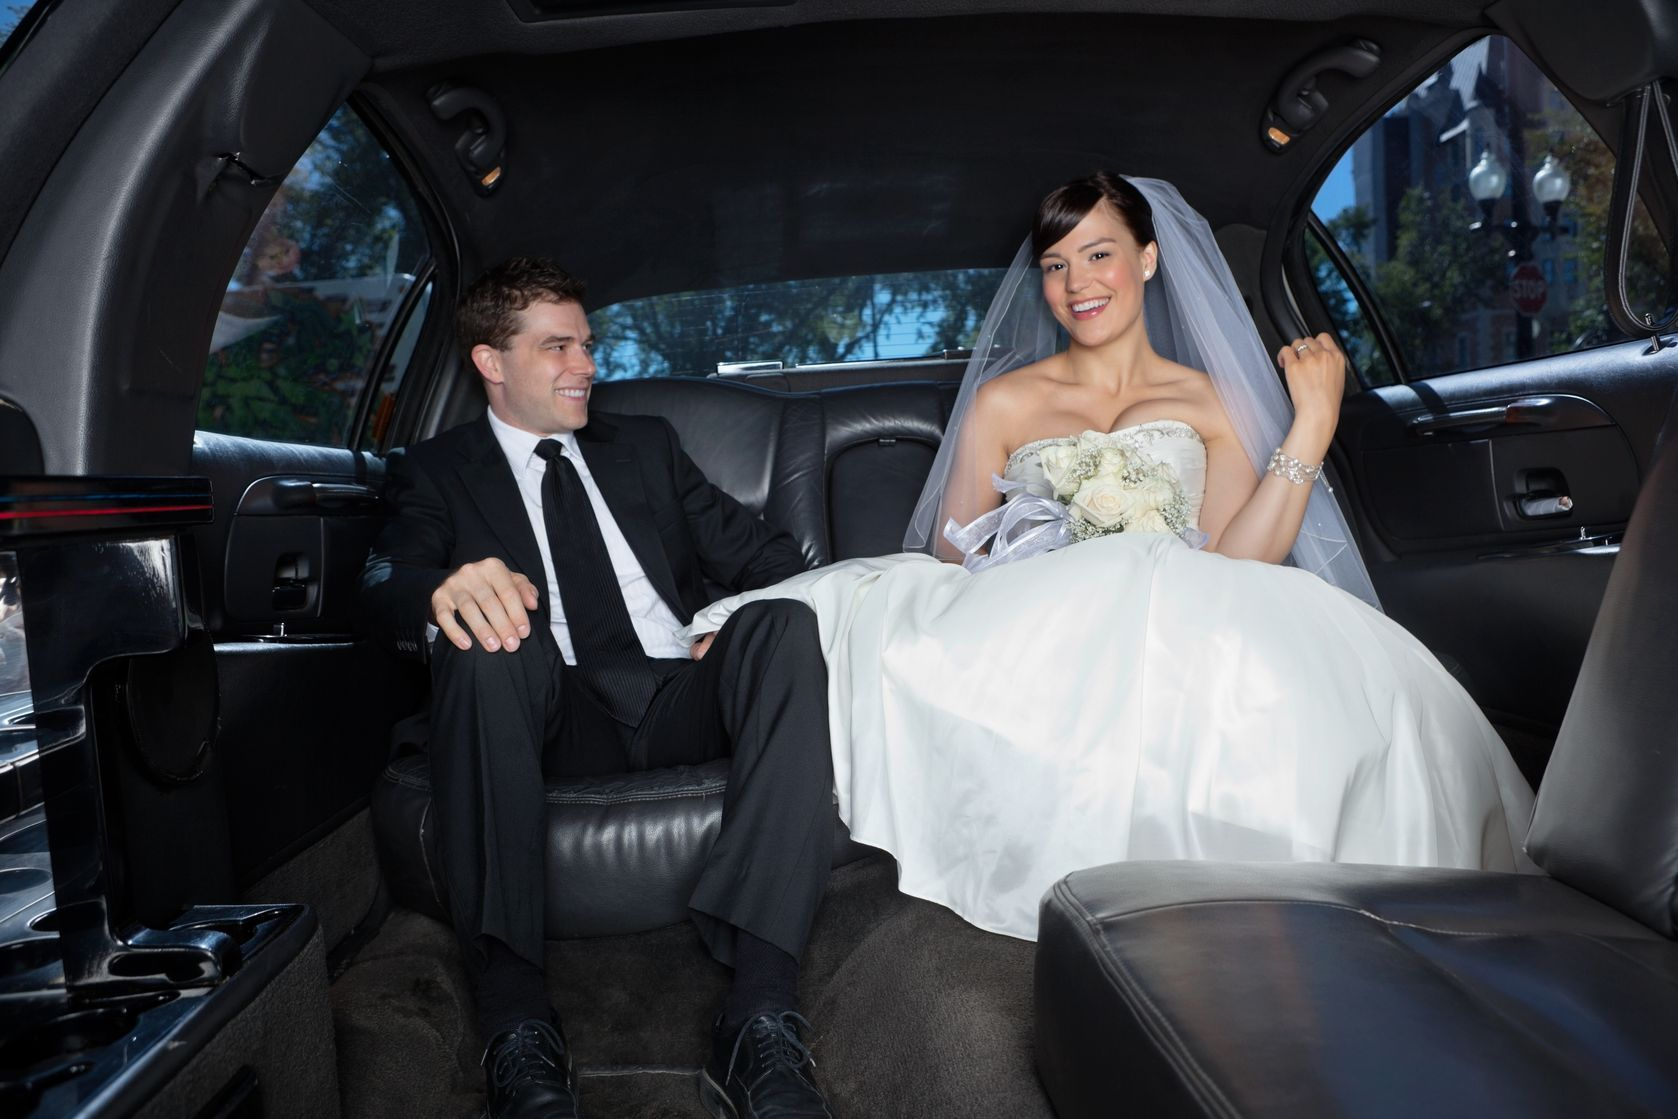 Need Best Wedding Limo Hire Sydney For Your Upcoming Wedding If Yes Then Look No Further Than Amore Limousines We Offe Wedding Limo Hire Sydney Pinte